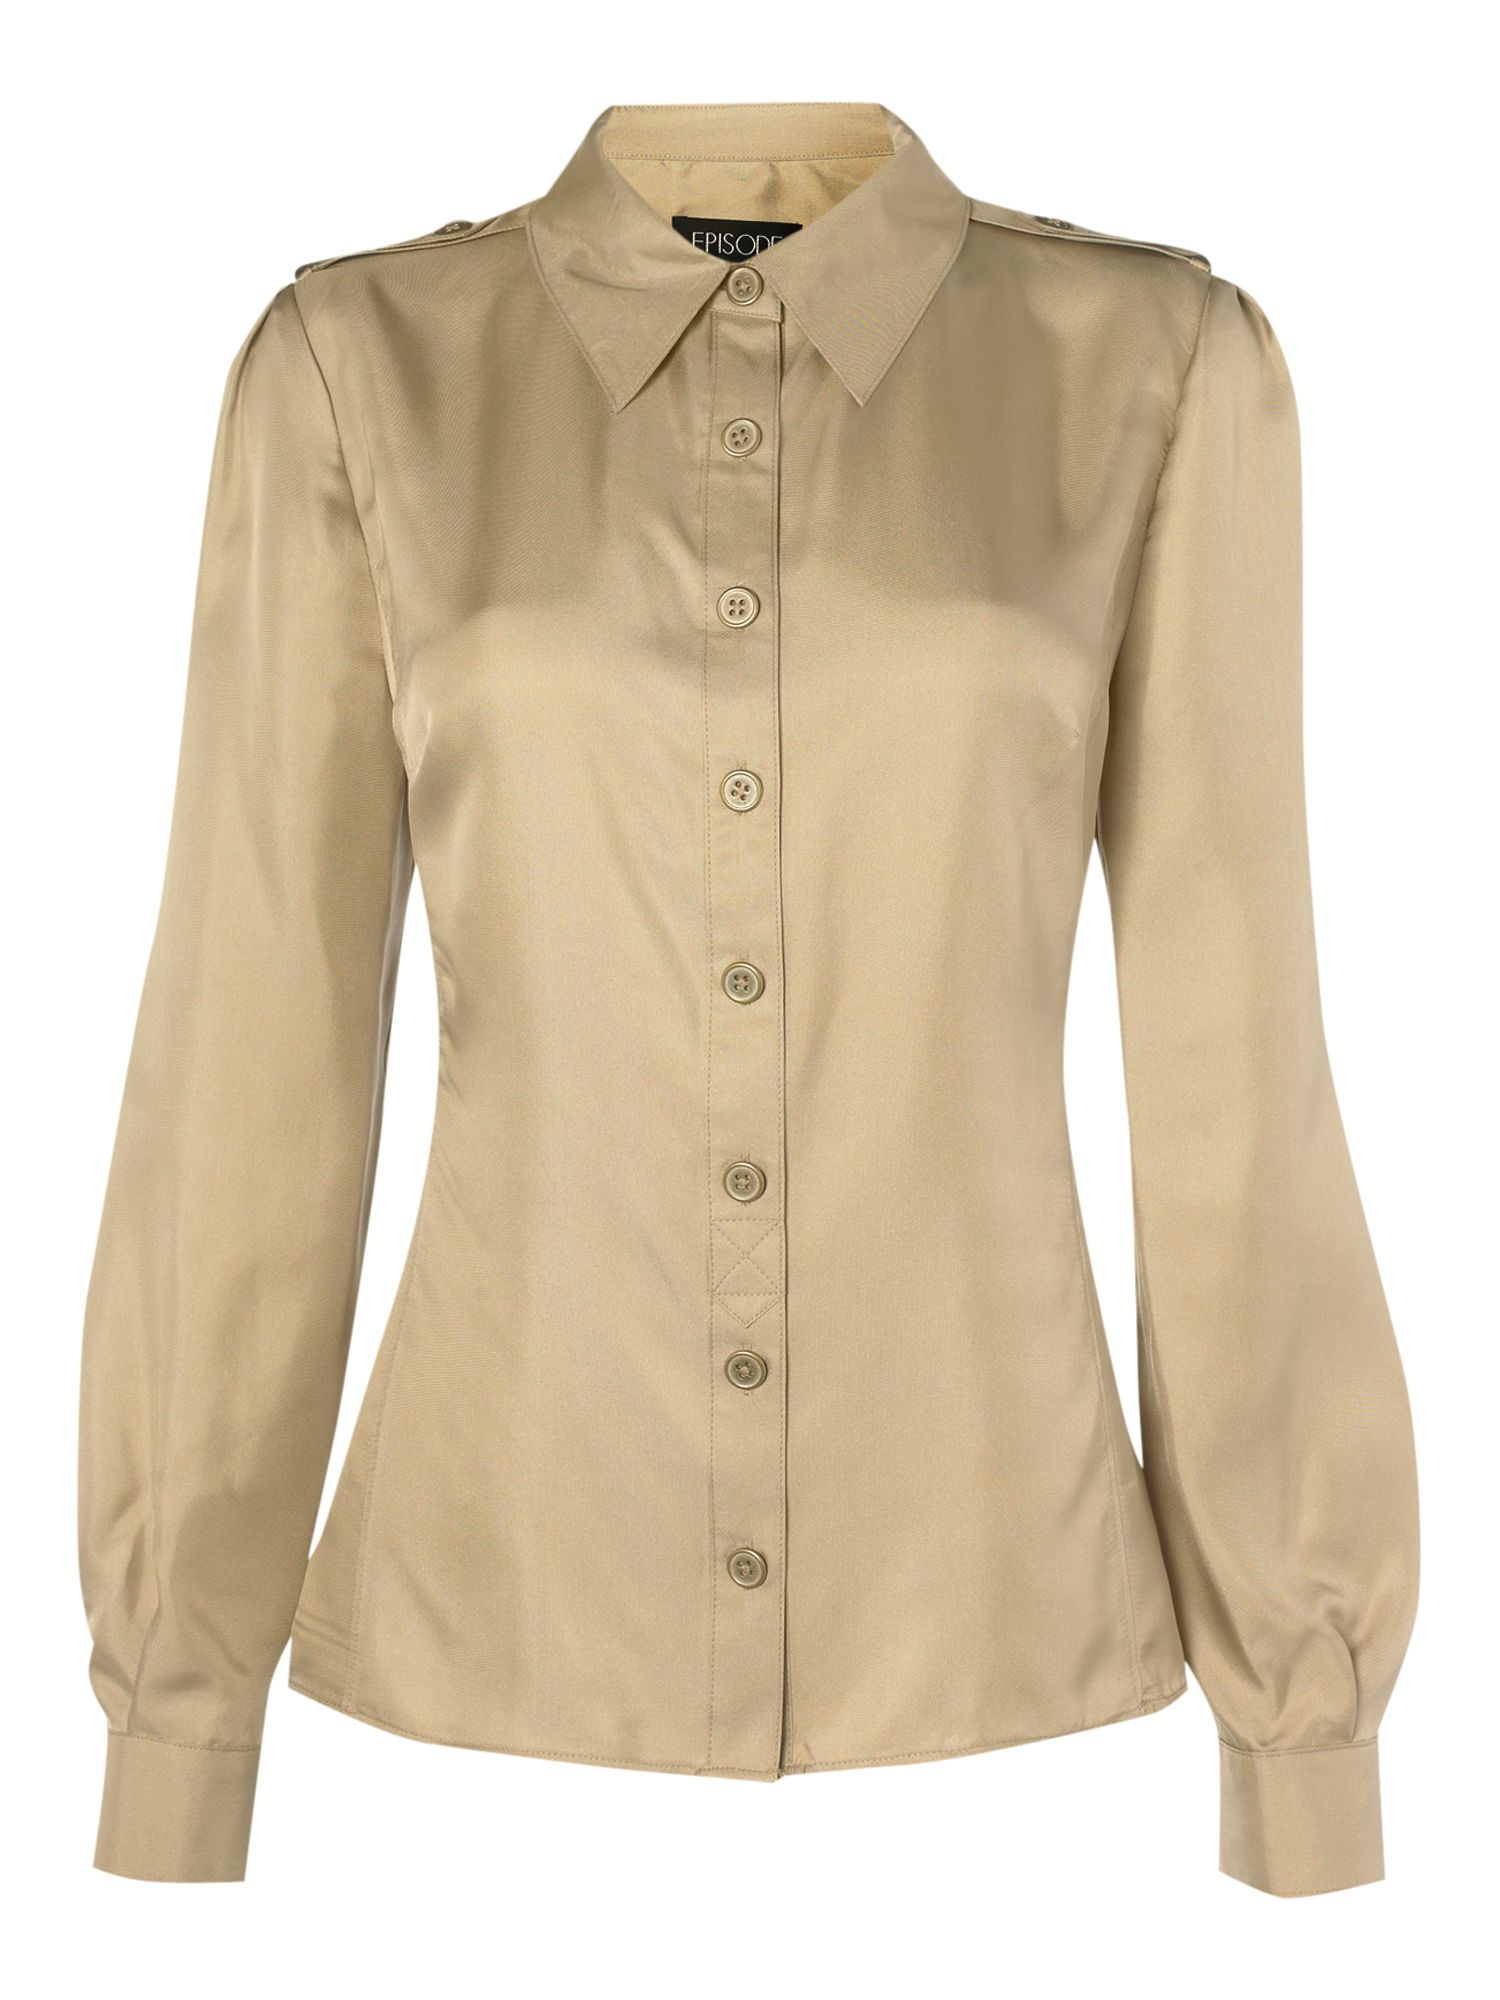 Episode Long sleeve military blouse - Sand 10,18,14 product image